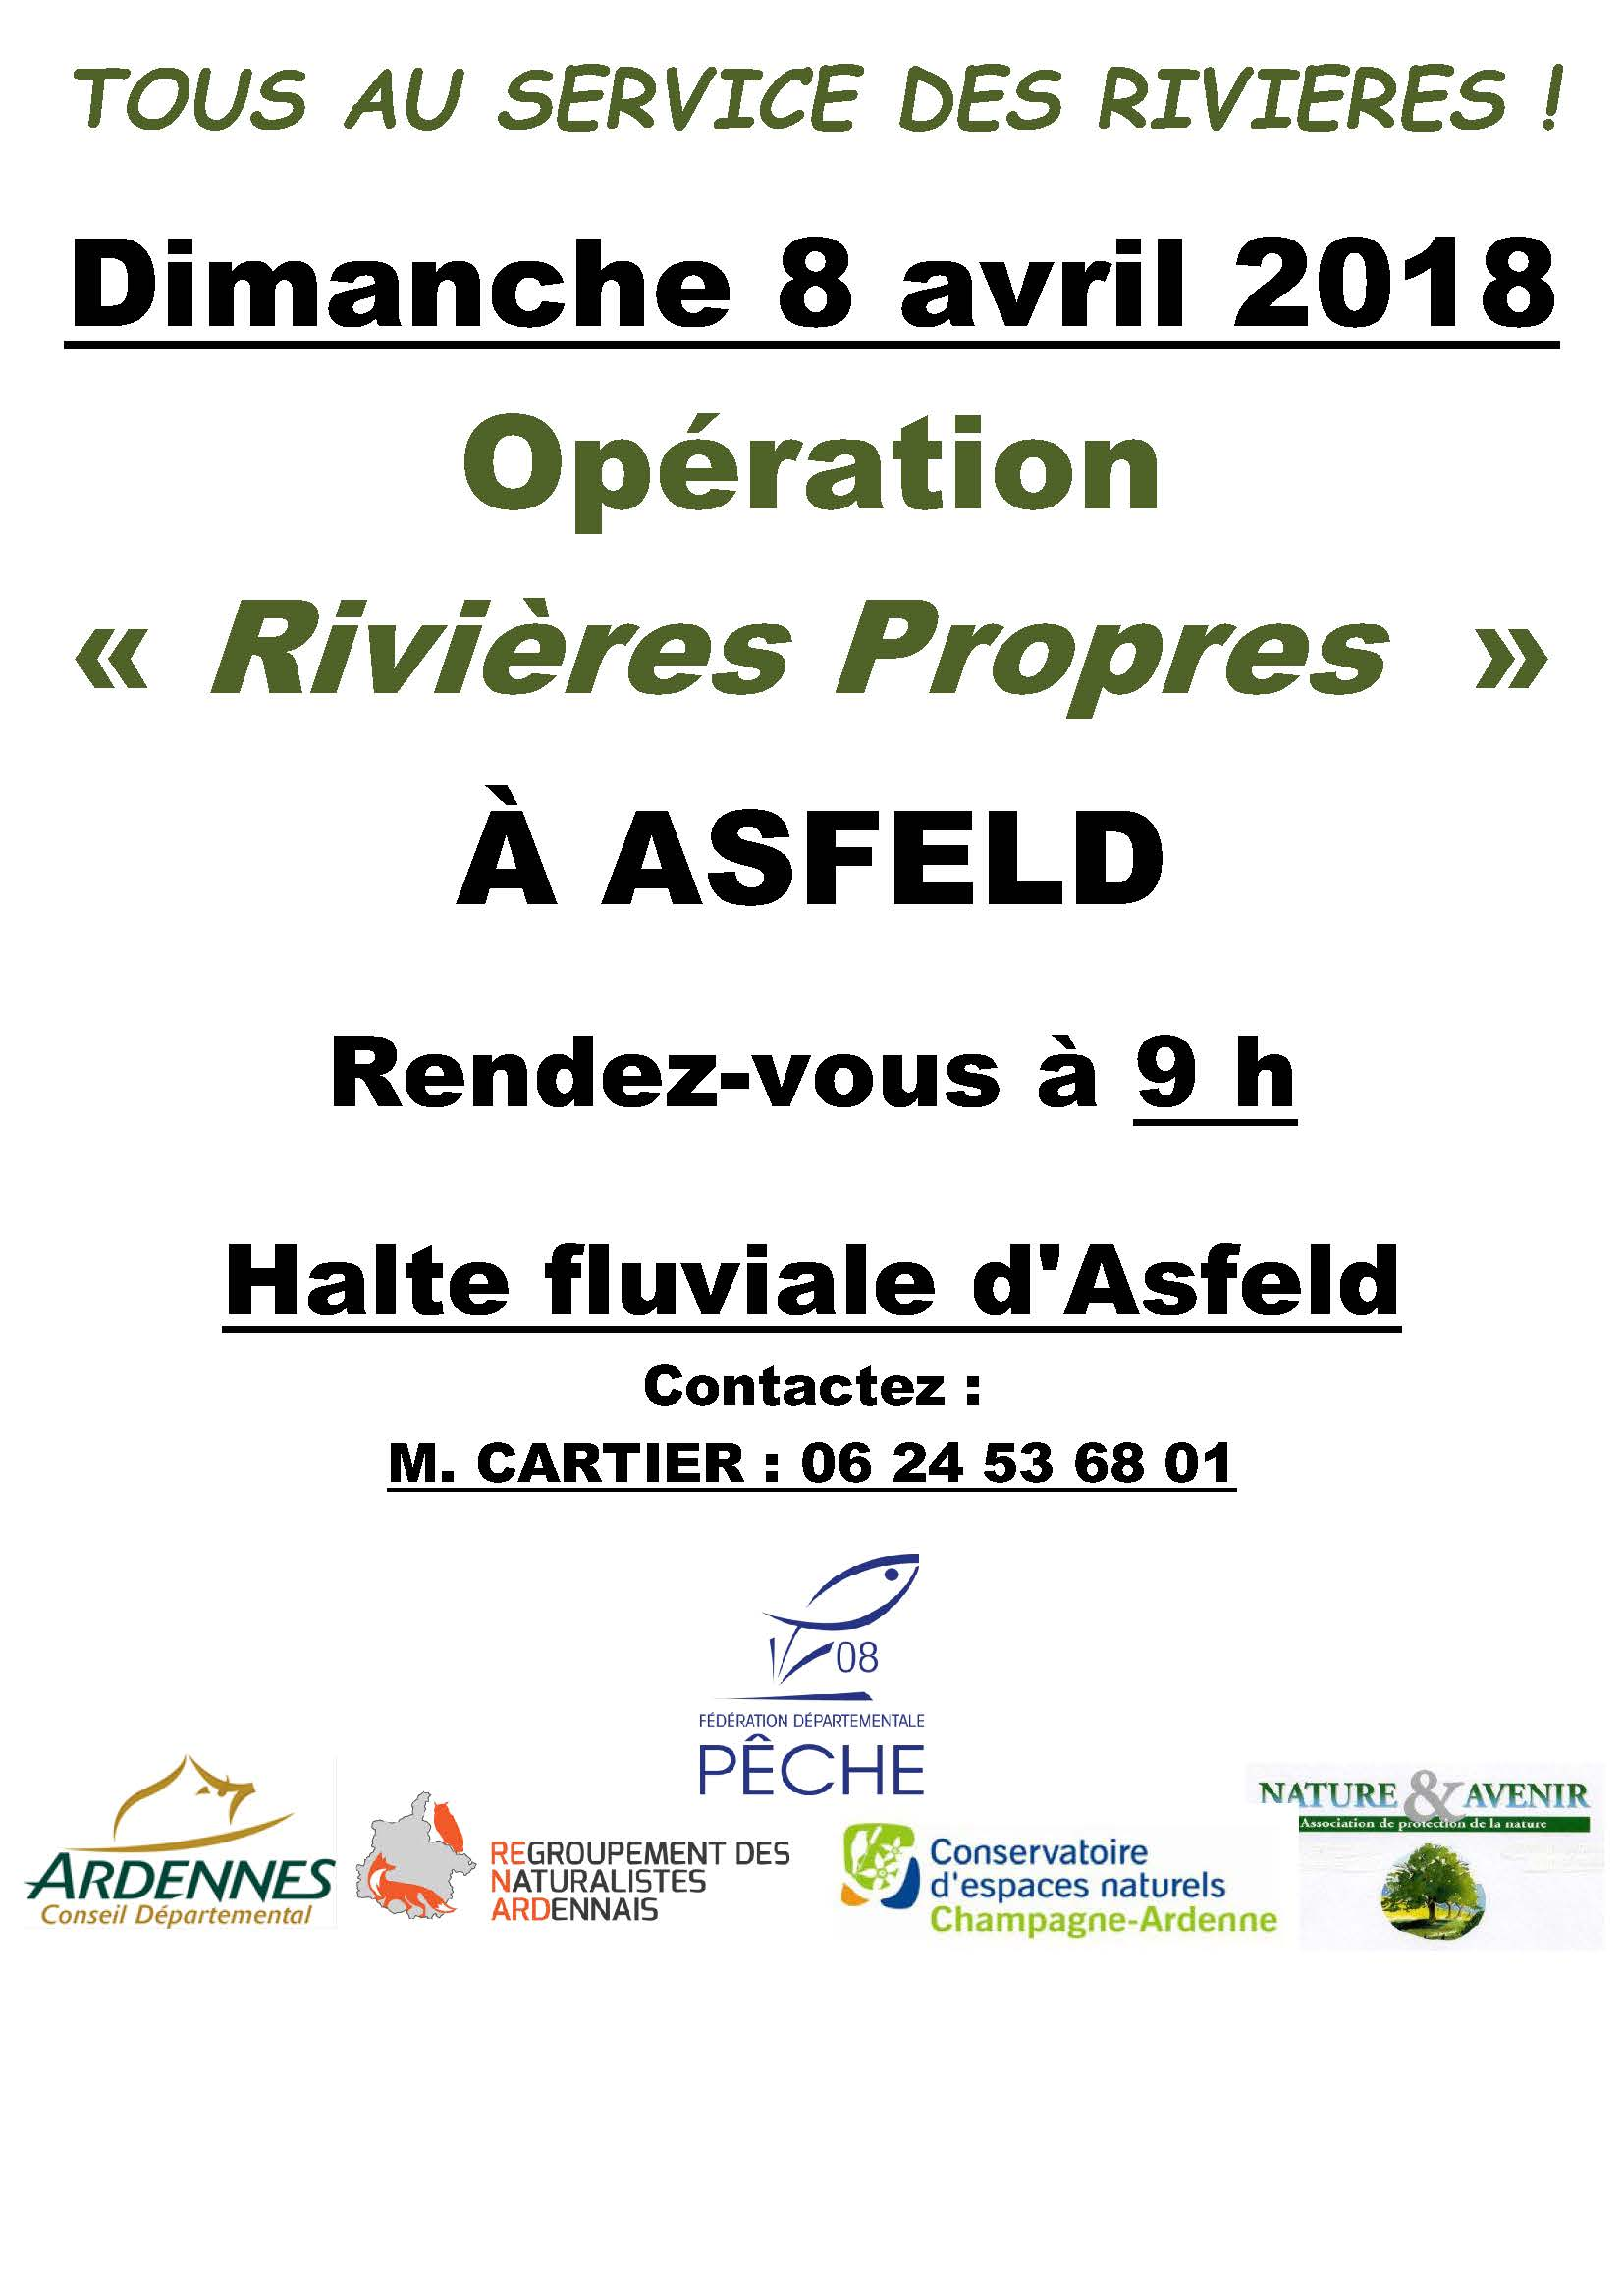 Affiches_Rivieres_Propres__08-04-18_Asfeld.jpg